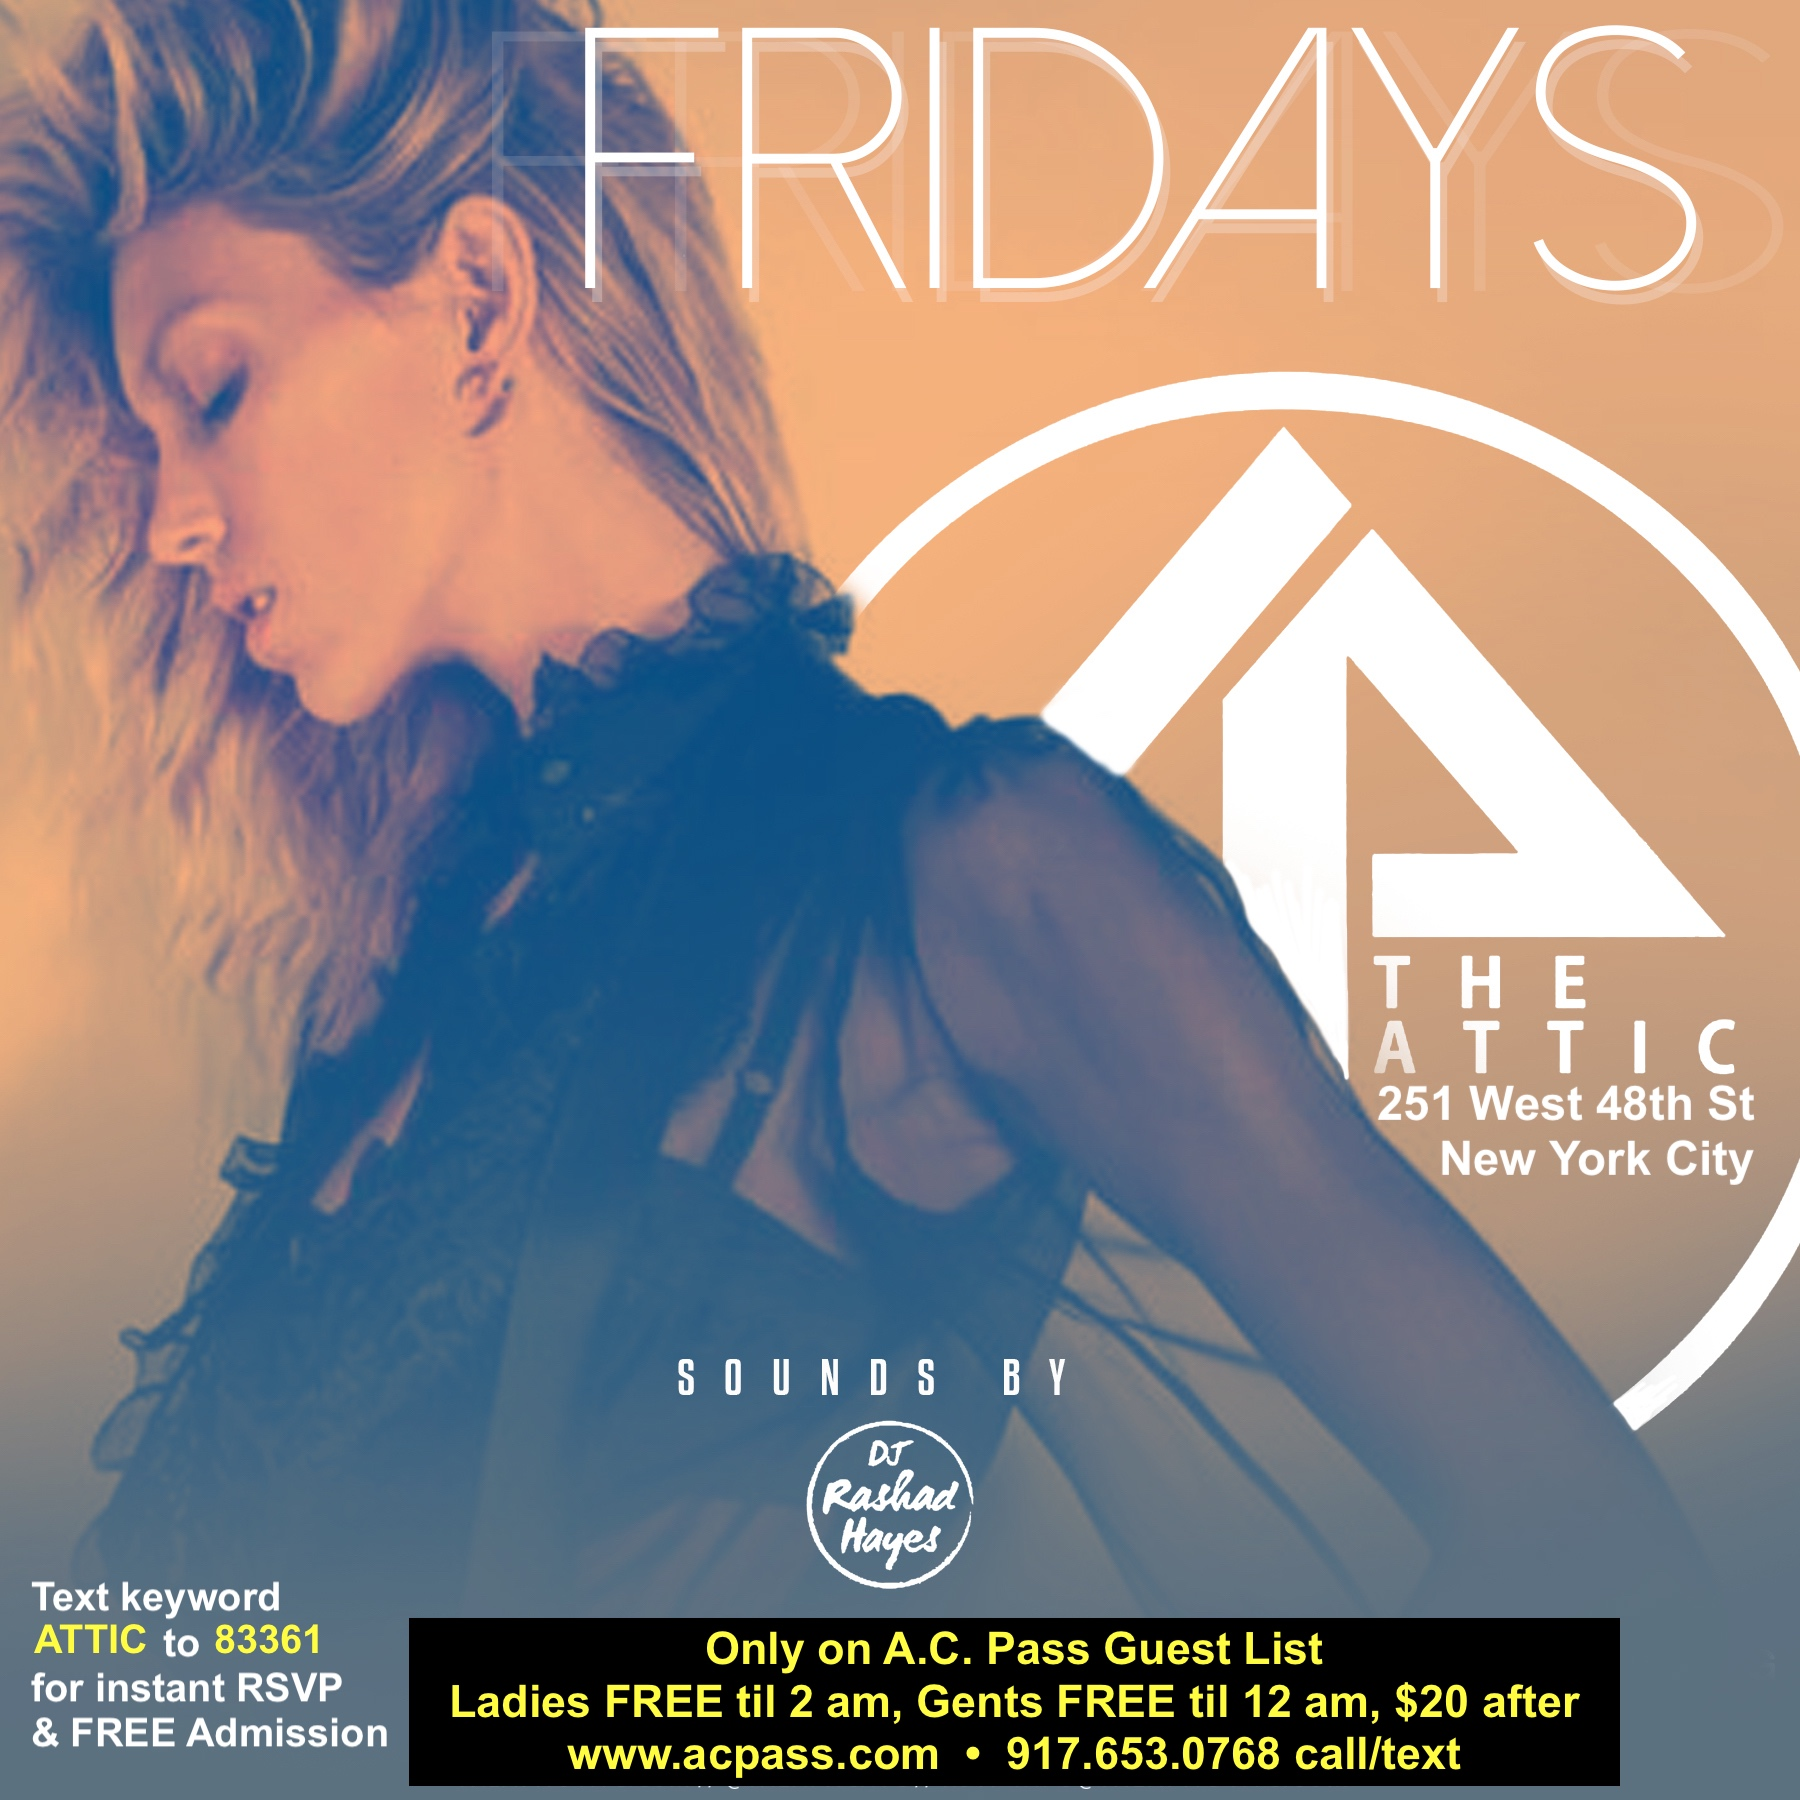 The Attic Fridays Times Square NYC